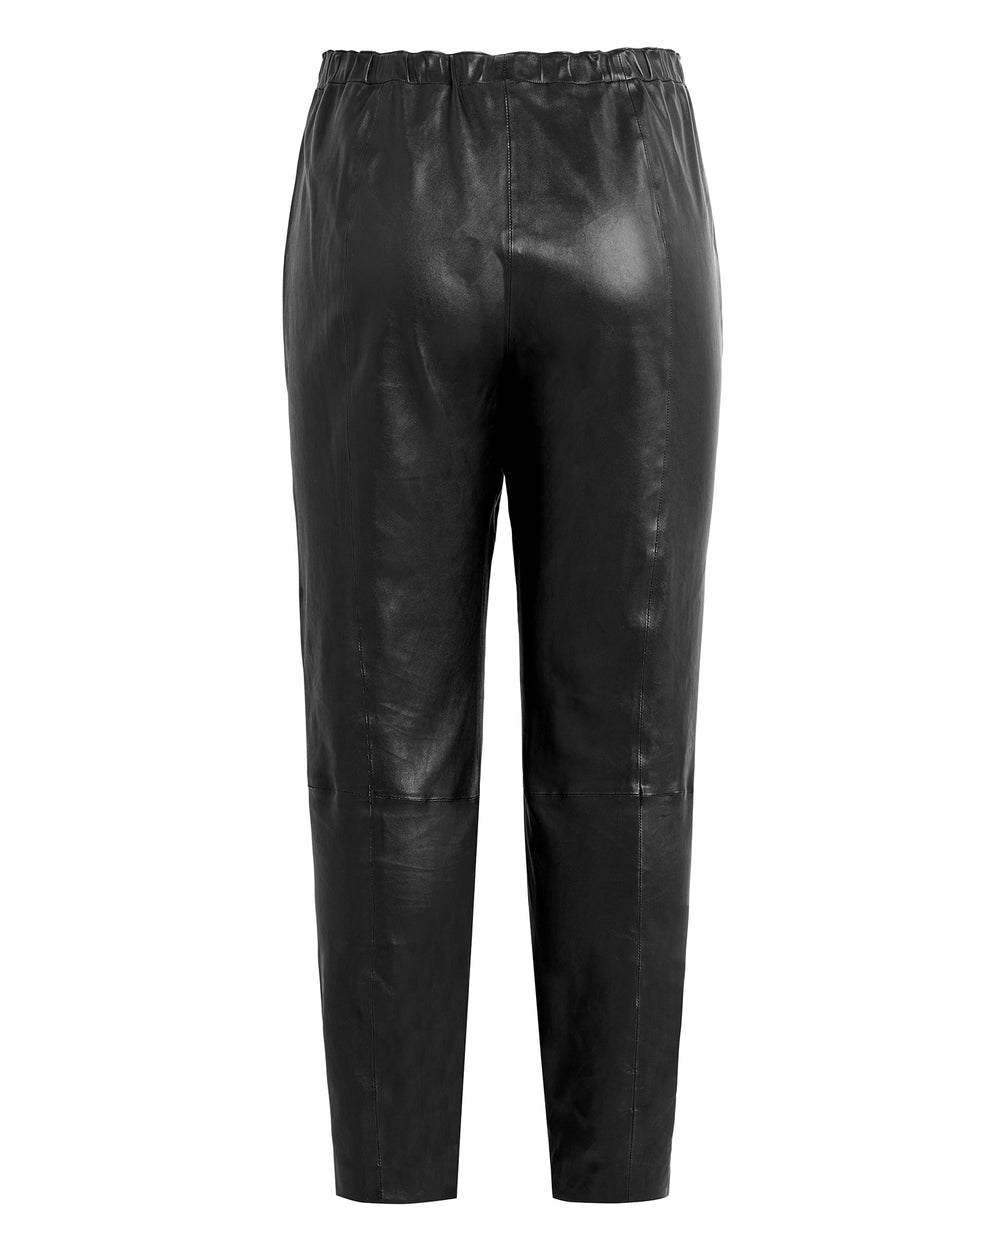 Nappa Leather Stretch Leggings w/ Zipper